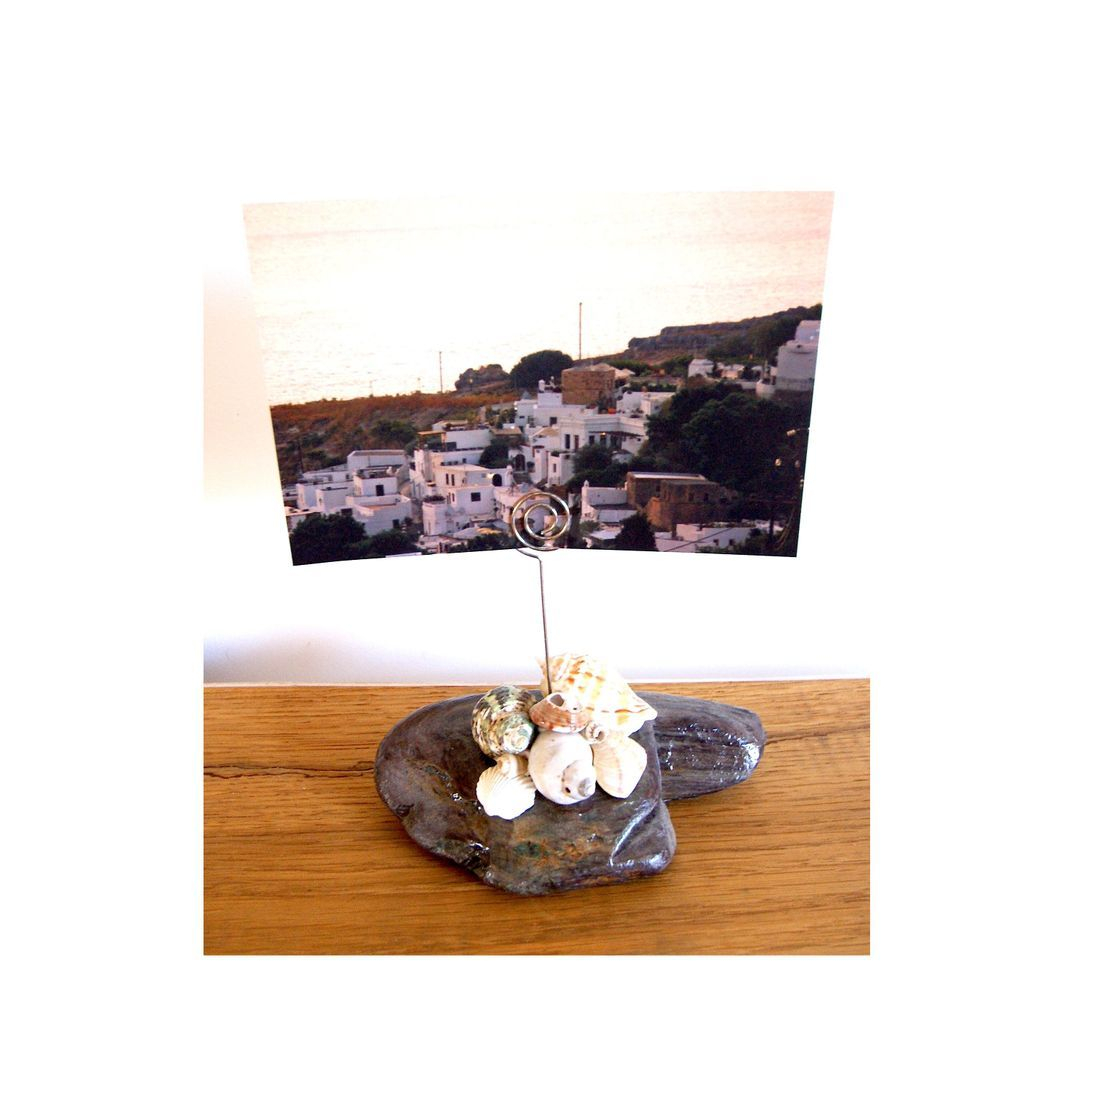 Driftwood picture / photo frame 3